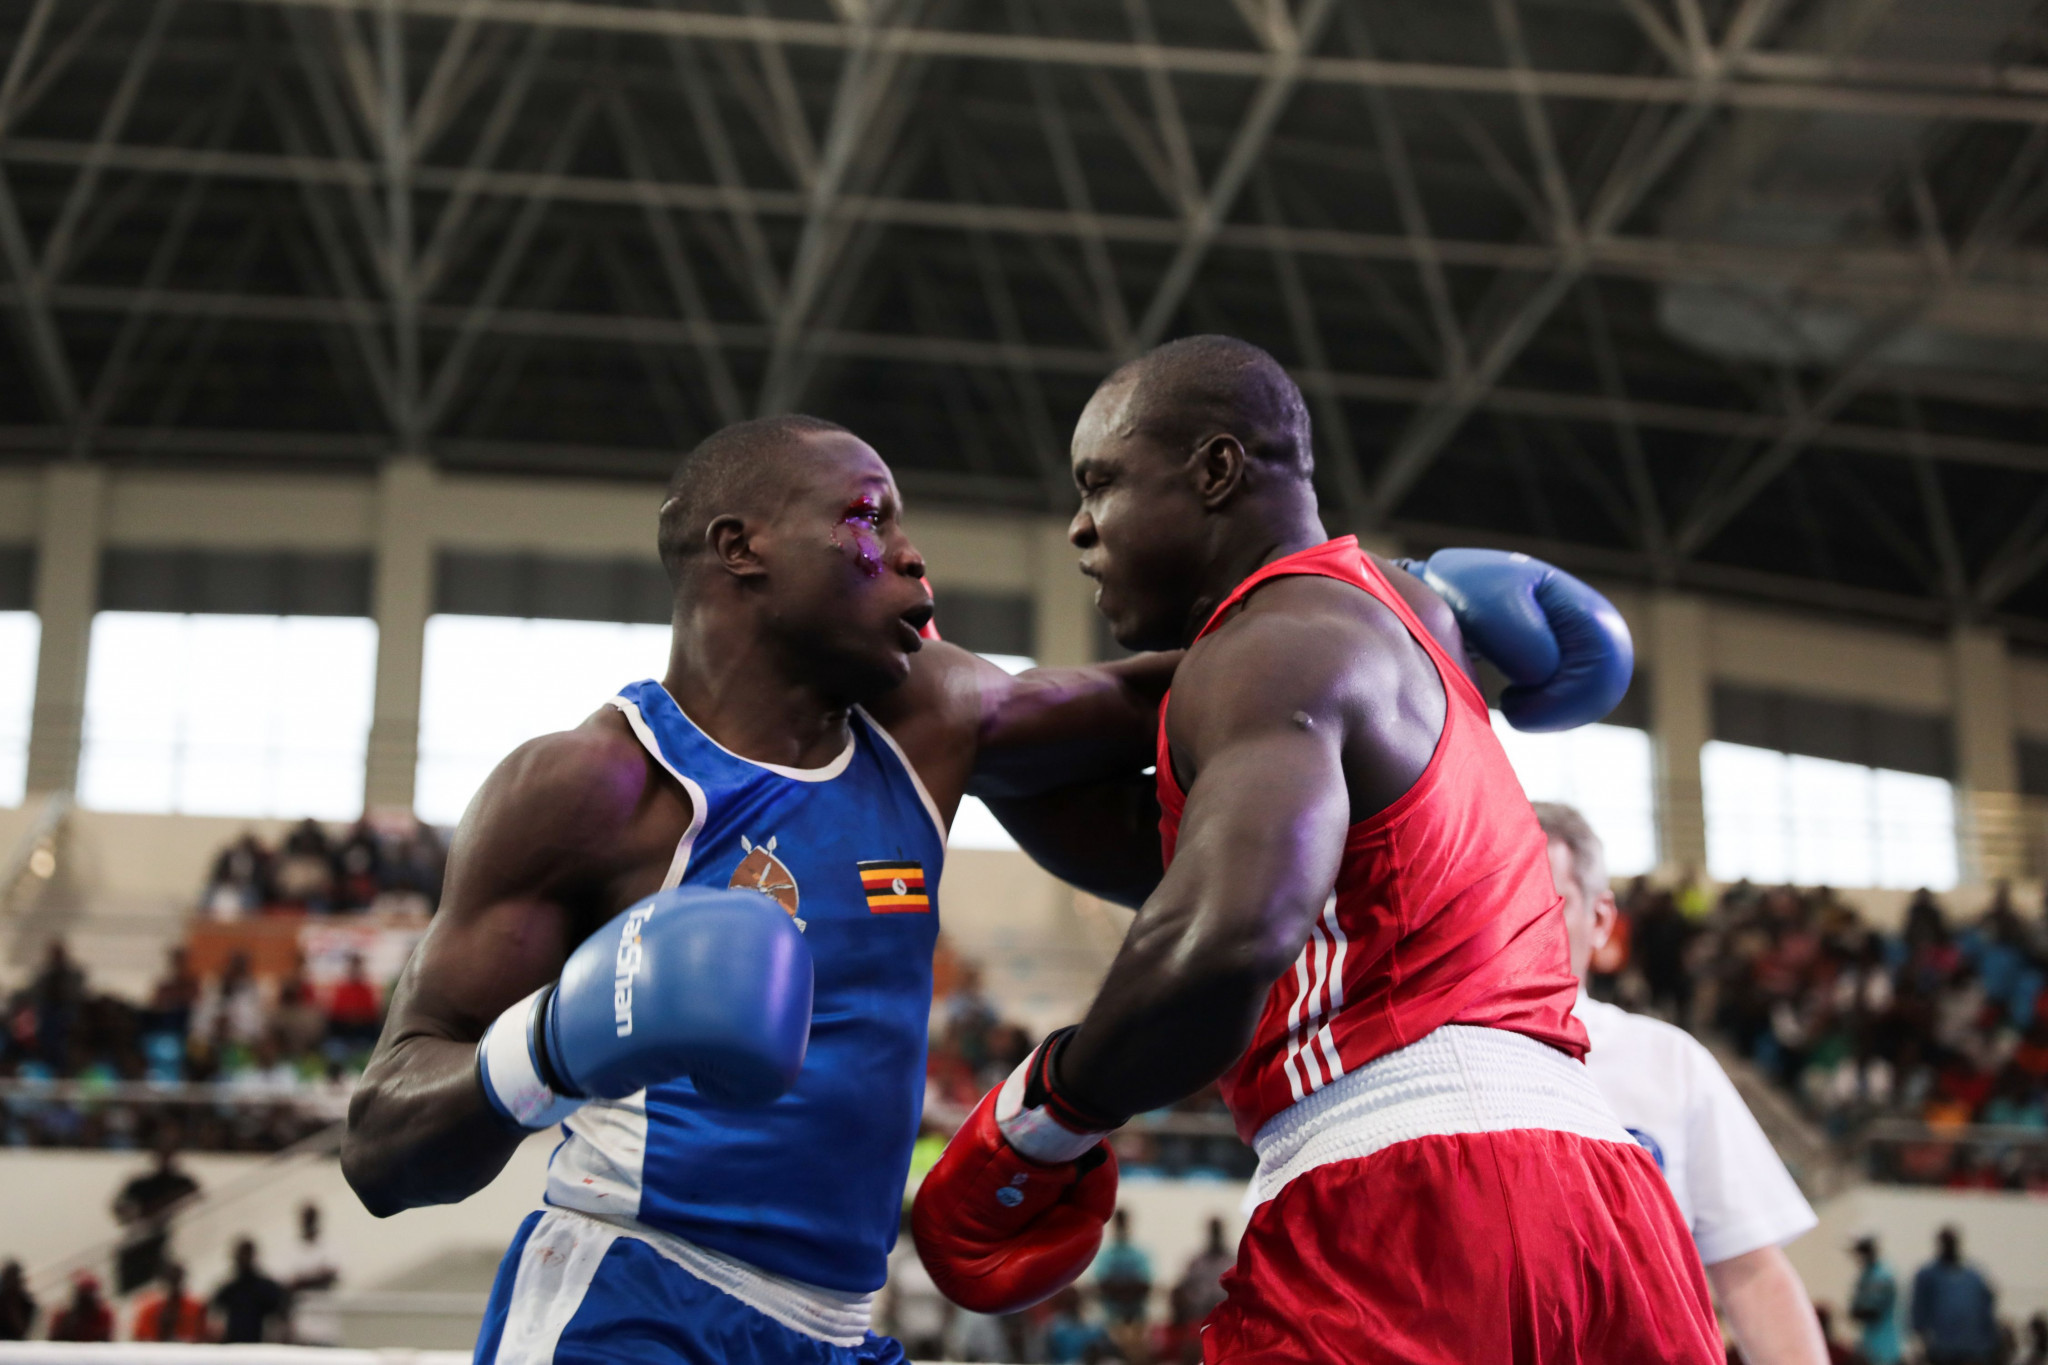 Uganda to lodge complaint to AIBA over omission of fighter from World Championships entry list